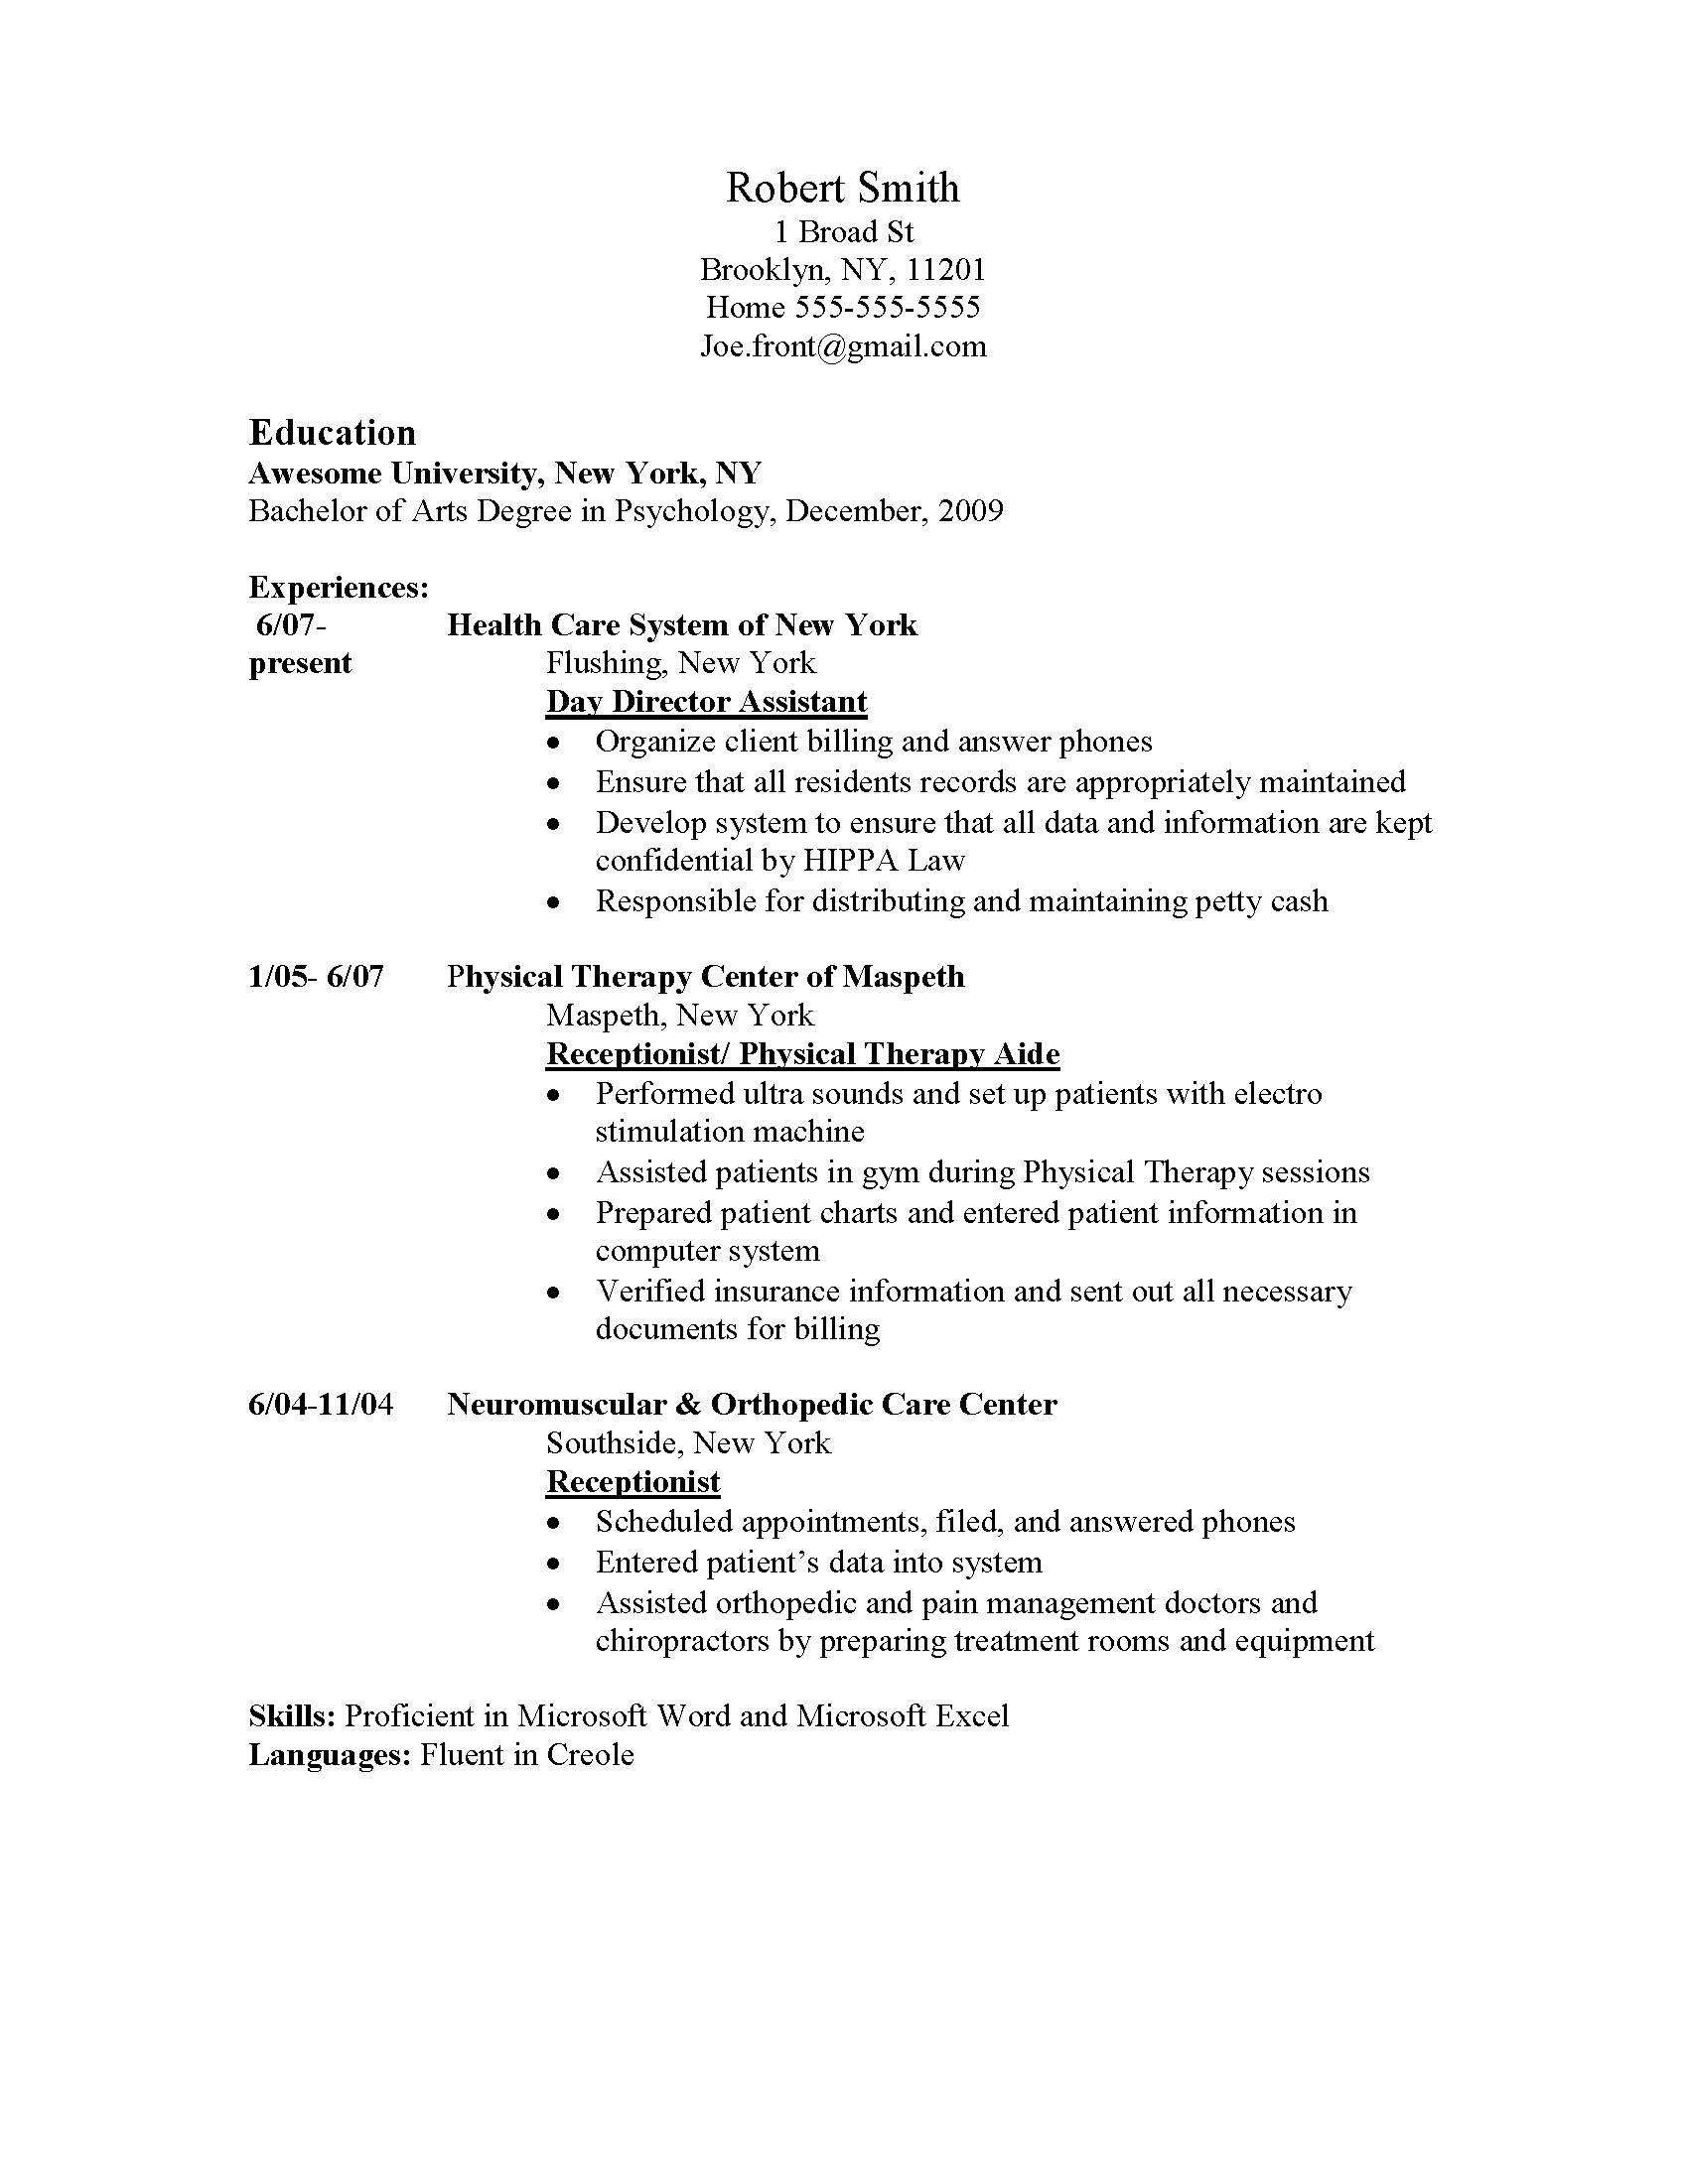 Resume Strengths Examples Key Strengths List For Resume. Planning For  Integrating Teaching .  Resume Key Words And Phrases